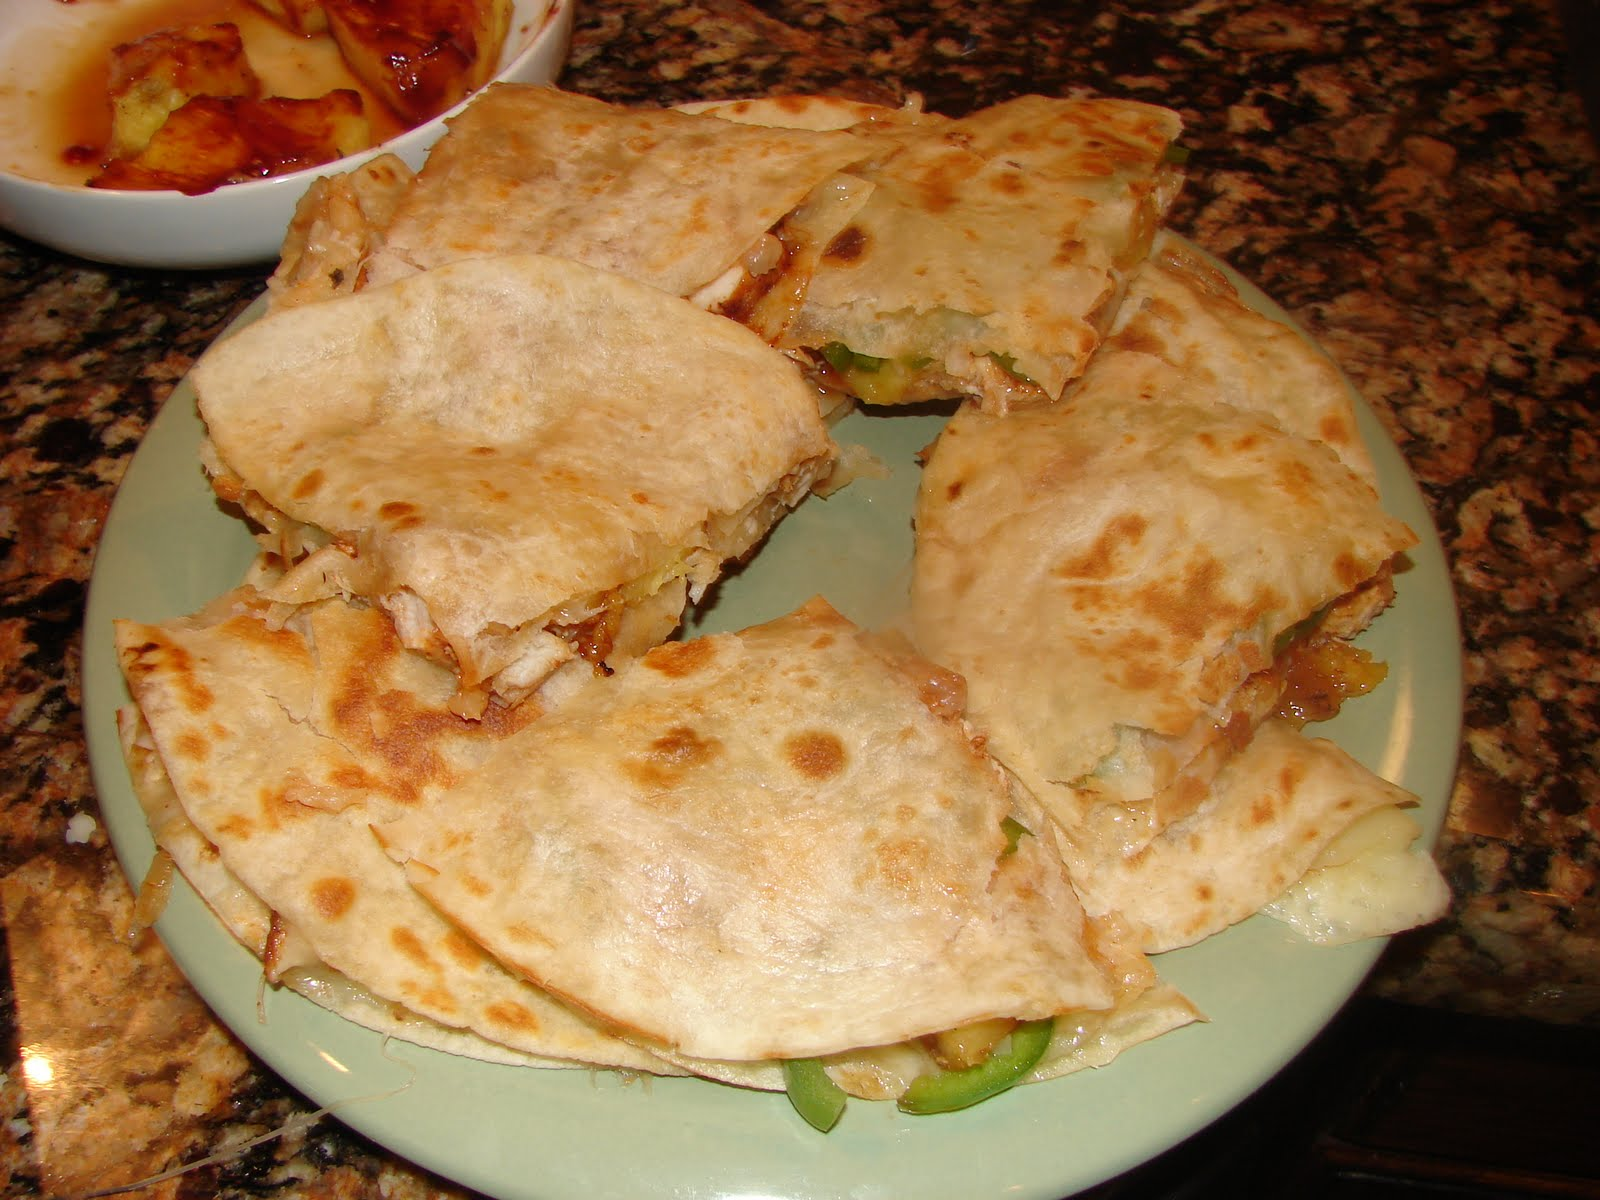 charmainesgibblegabble: GRILLED CHICKEN AND PINEAPPLE QUESADILLAS